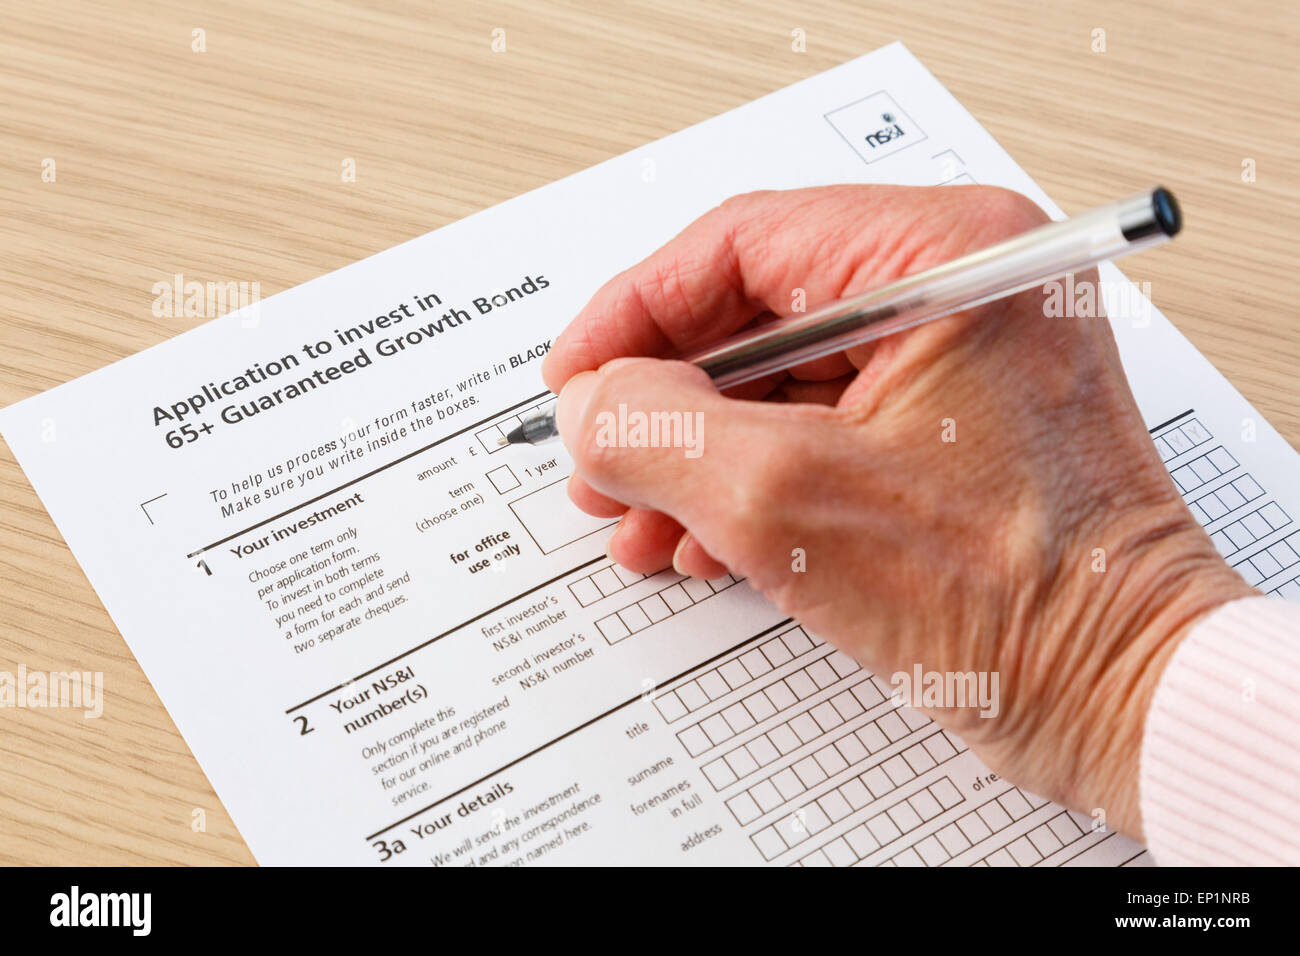 Elderly senior pensioner completing an application form to buy investments in 65+ Guaranteed Growth Bonds. England - Stock Image